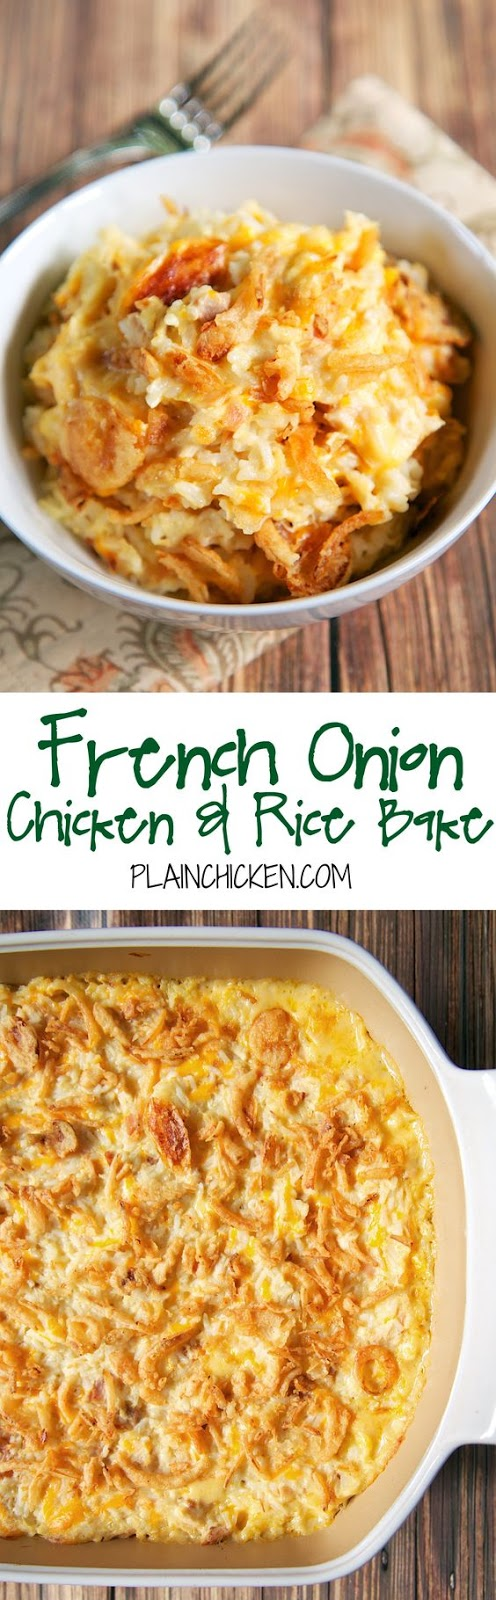 FRENCH ONION CHICKEN AND RICE BAKE   #DESSERTS #HEALTHYFOOD #EASYRECIPES #DINNER #LAUCH #DELICIOUS #EASY #HOLIDAYS #RECIPE #SPECIALDIET #WORLDCUISINE #CAKE #APPETIZERS #HEALTHYRECIPES #DRINKS #COOKINGMETHOD #ITALIANRECIPES #MEAT #VEGANRECIPES #COOKIES #PASTA #FRUIT #SALAD #SOUPAPPETIZERS #NONALCOHOLICDRINKS #MEALPLANNING #VEGETABLES #SOUP #PASTRY #CHOCOLATE #DAIRY #ALCOHOLICDRINKS #BULGURSALAD #BAKING #SNACKS #BEEFRECIPES #MEATAPPETIZERS #MEXICANRECIPES #BREAD #ASIANRECIPES #SEAFOODAPPETIZERS #MUFFINS #BREAKFASTANDBRUNCH #CONDIMENTS #CUPCAKES #CHEESE #CHICKENRECIPES #PIE #COFFEE #NOBAKEDESSERTS #HEALTHYSNACKS #SEAFOOD #GRAIN #LUNCHESDINNERS #MEXICAN #QUICKBREAD #LIQUOR